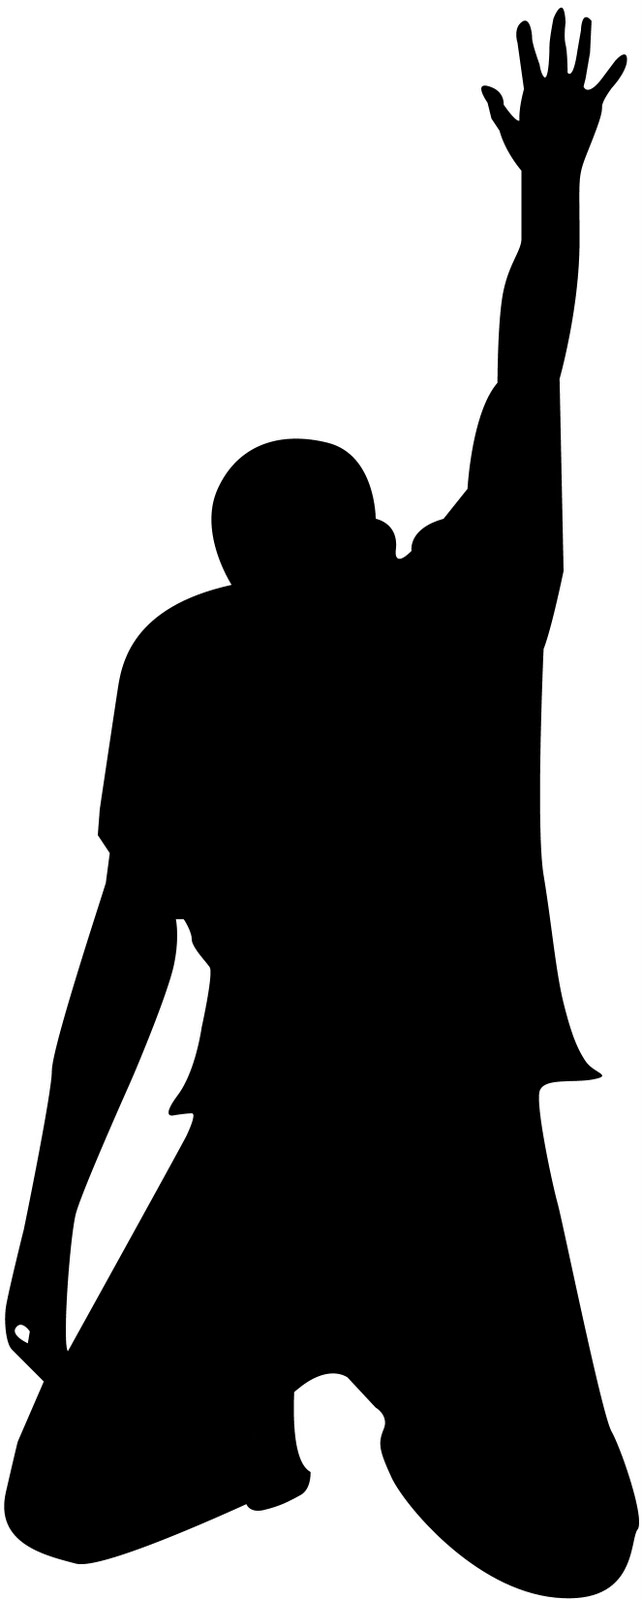 642x1600 Black People Praying Clipart